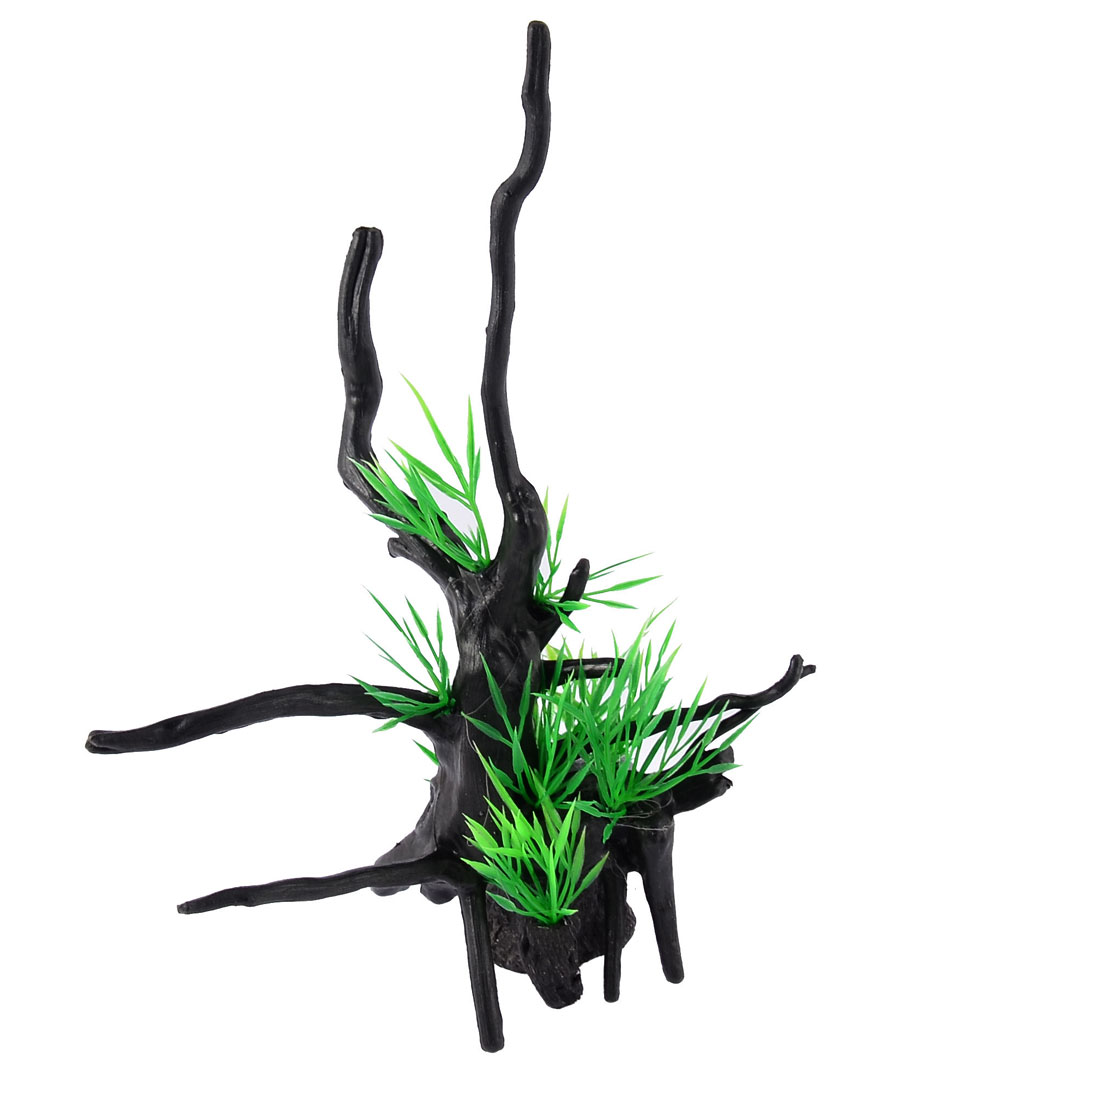 Green Black Plastic Artificial Leaf Tree Design Aquascaping Ornament Plant for Aquarium Fish Tank